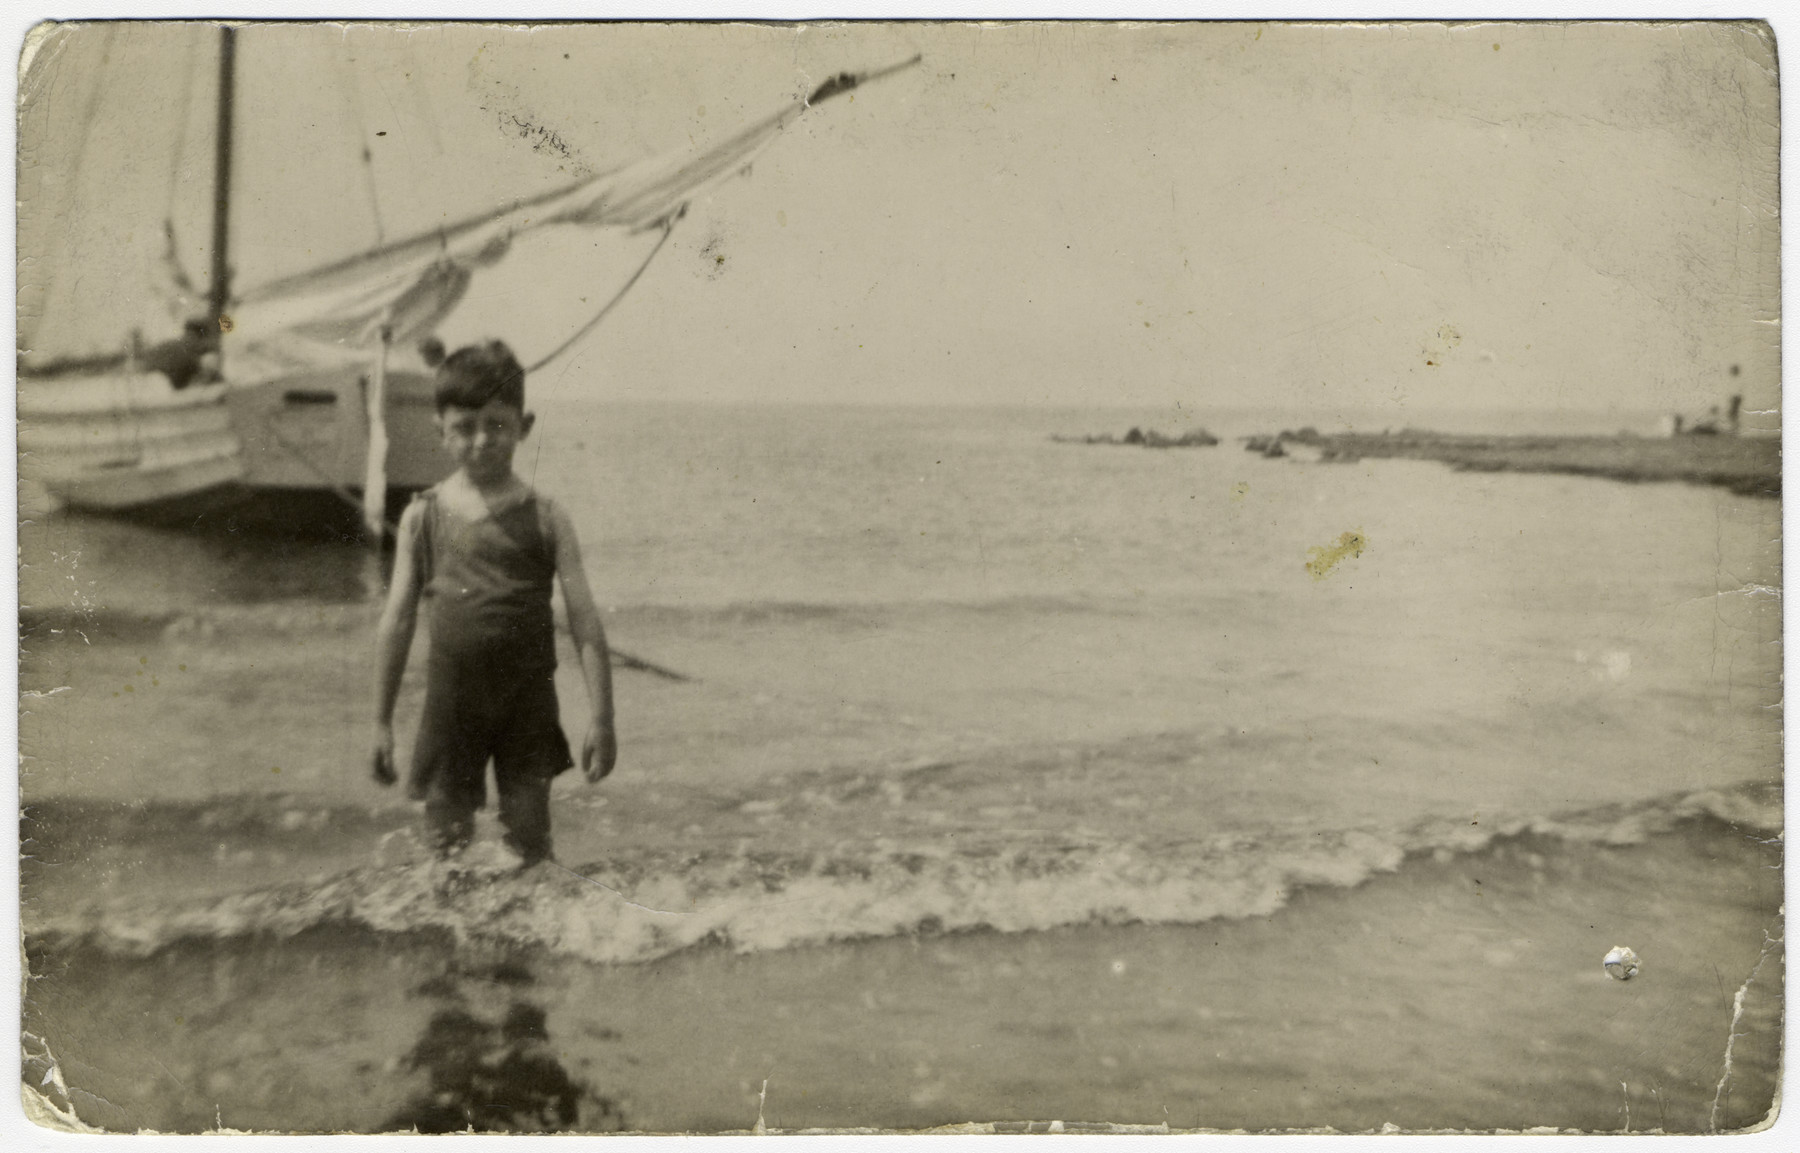 Louis Moses wades in the sea in prewar Netherlands.